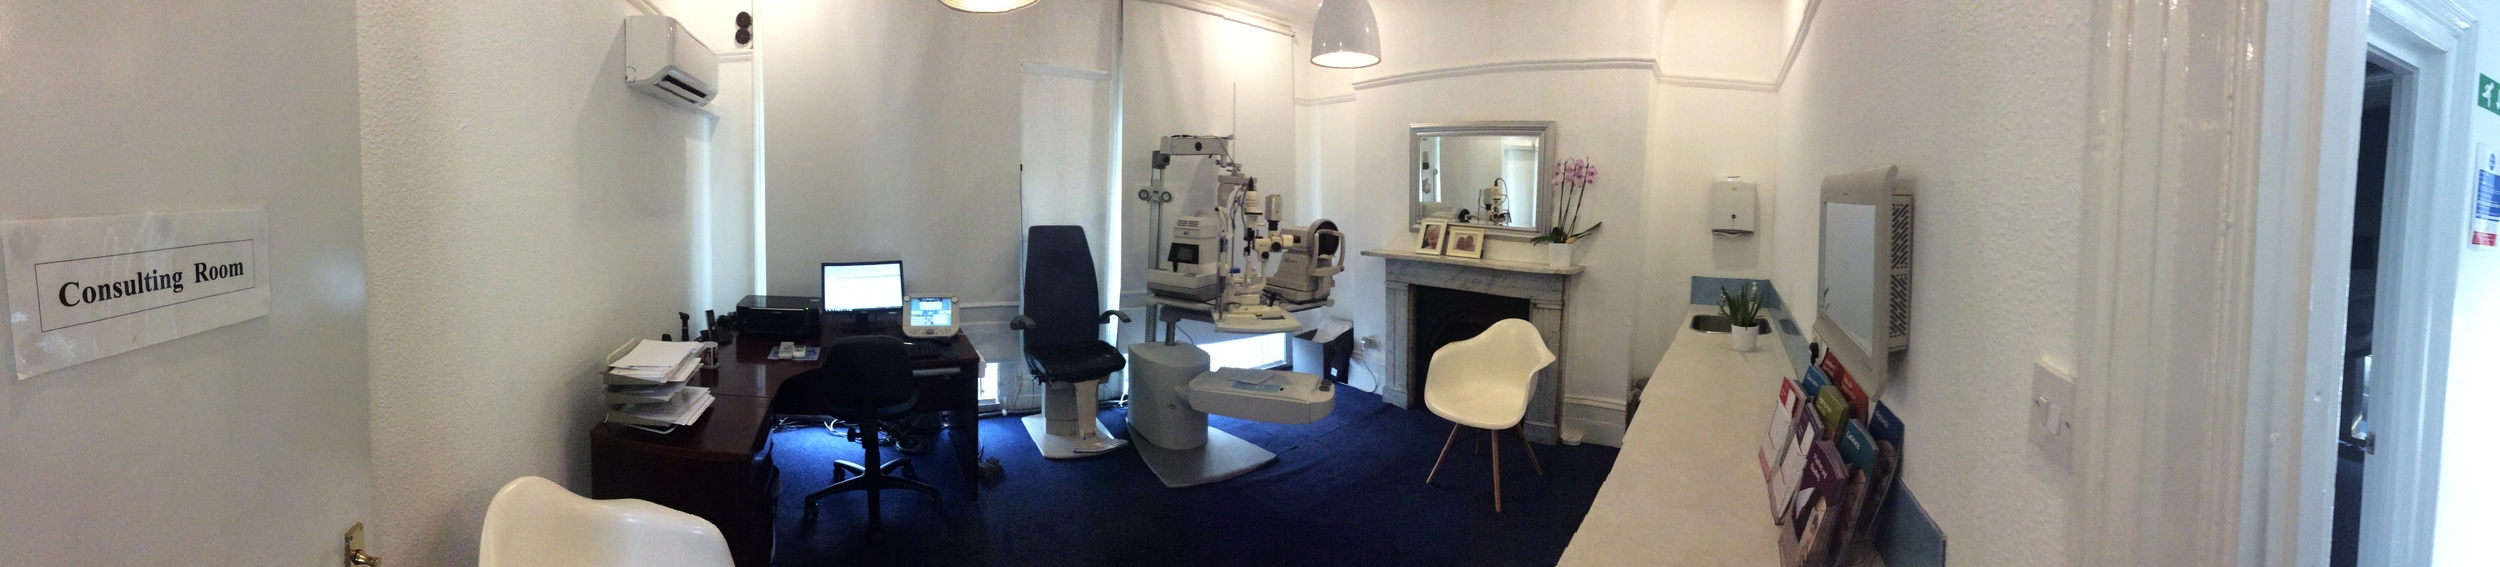 State of the art Consulting Room